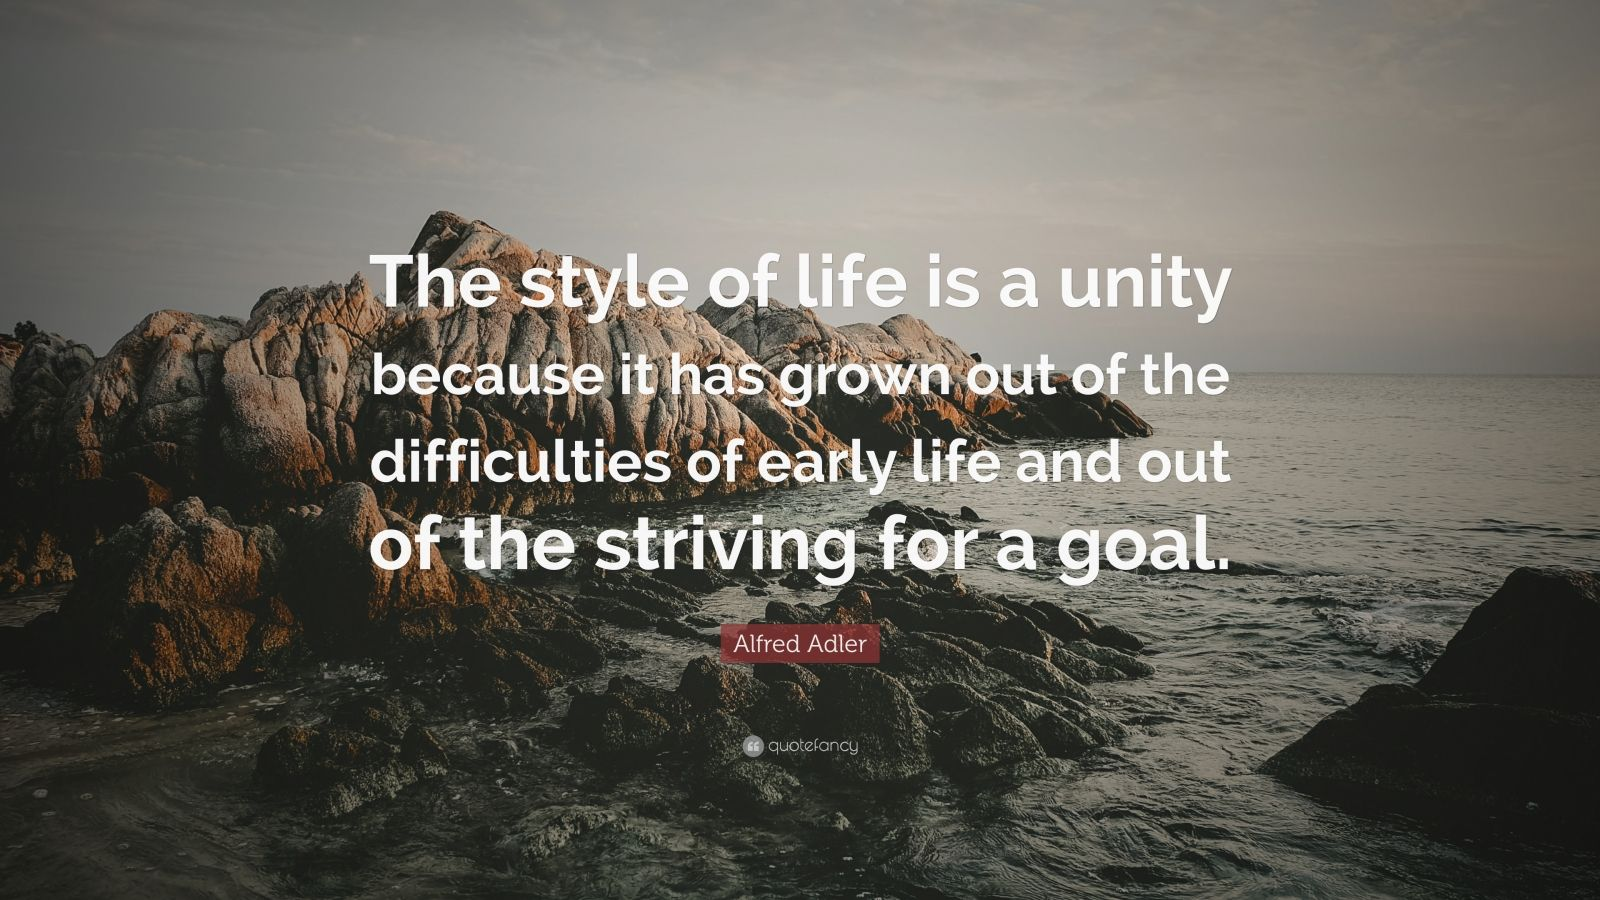 """Alfred Adler Quote: """"The style of life is a unity because it has grown out of the difficulties of early life and out of the striving for a goal."""""""